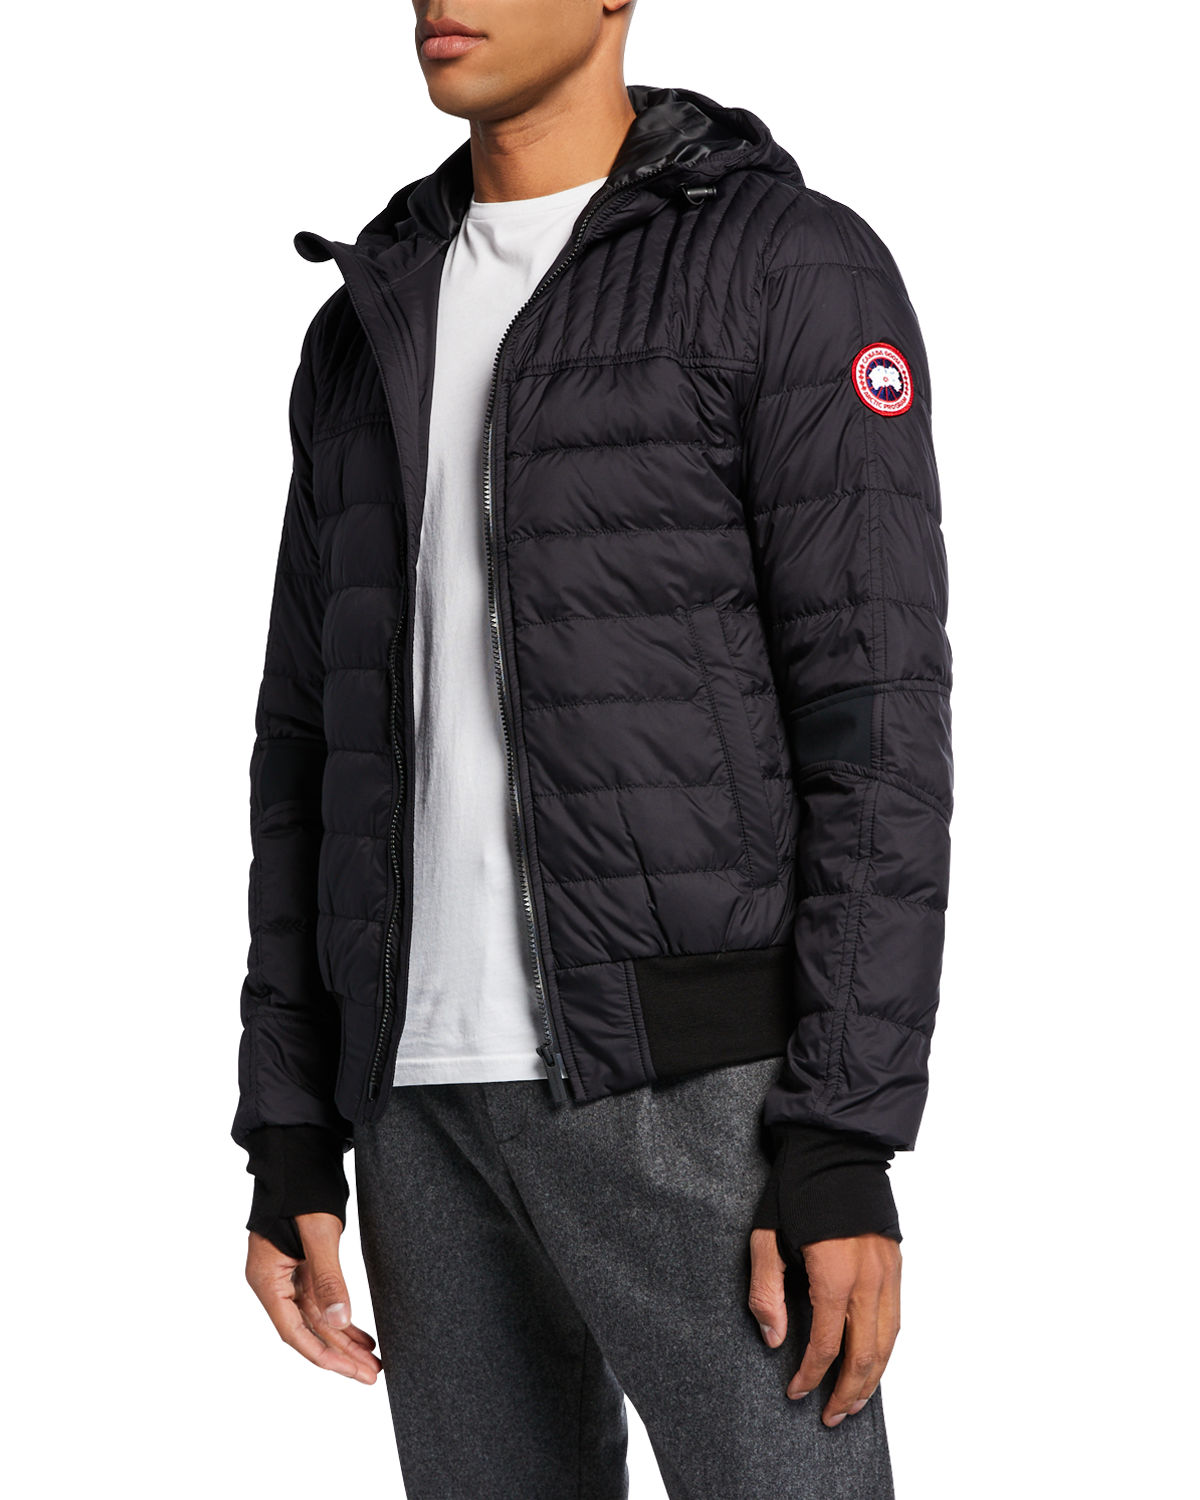 0307d4d6ec147 Canada Goose Men s Cabri Hooded Puffer Jacket